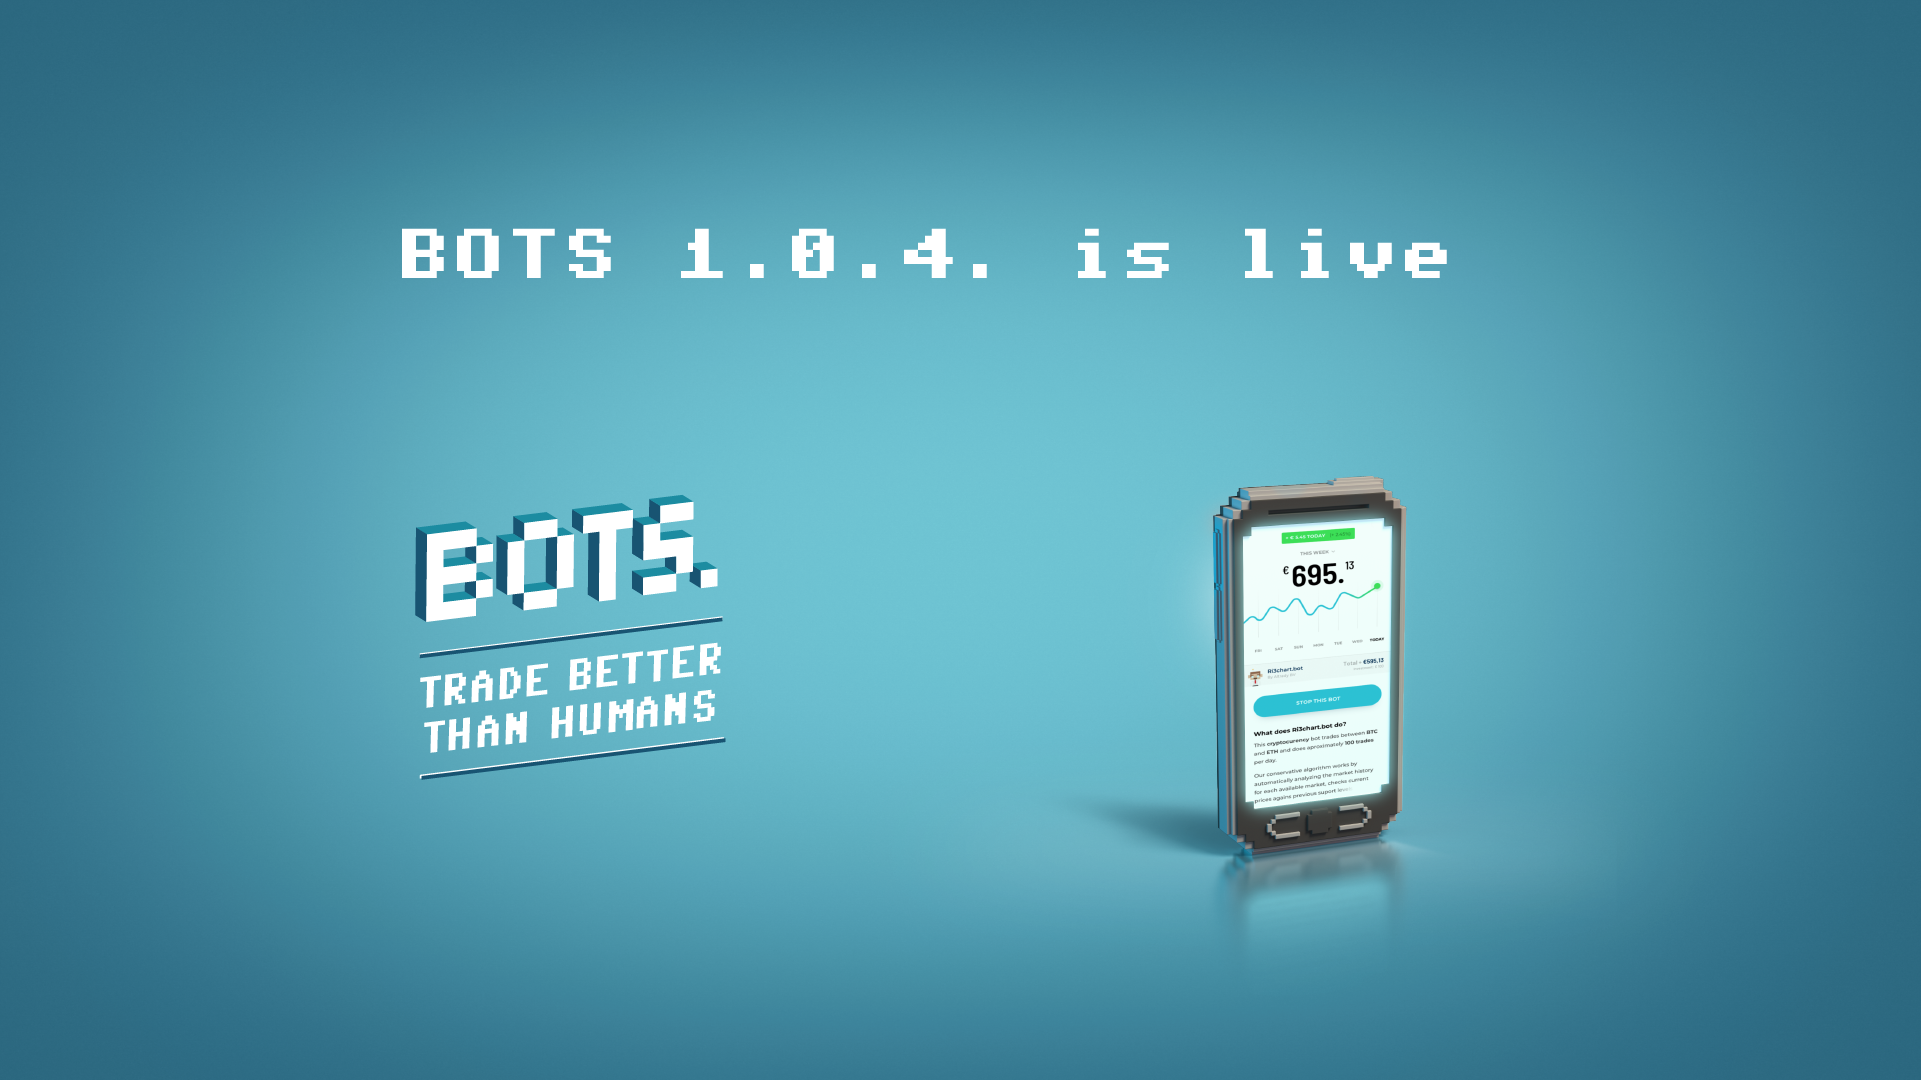 BOTS by RevenYOU | BOTS 1.0.4. is live